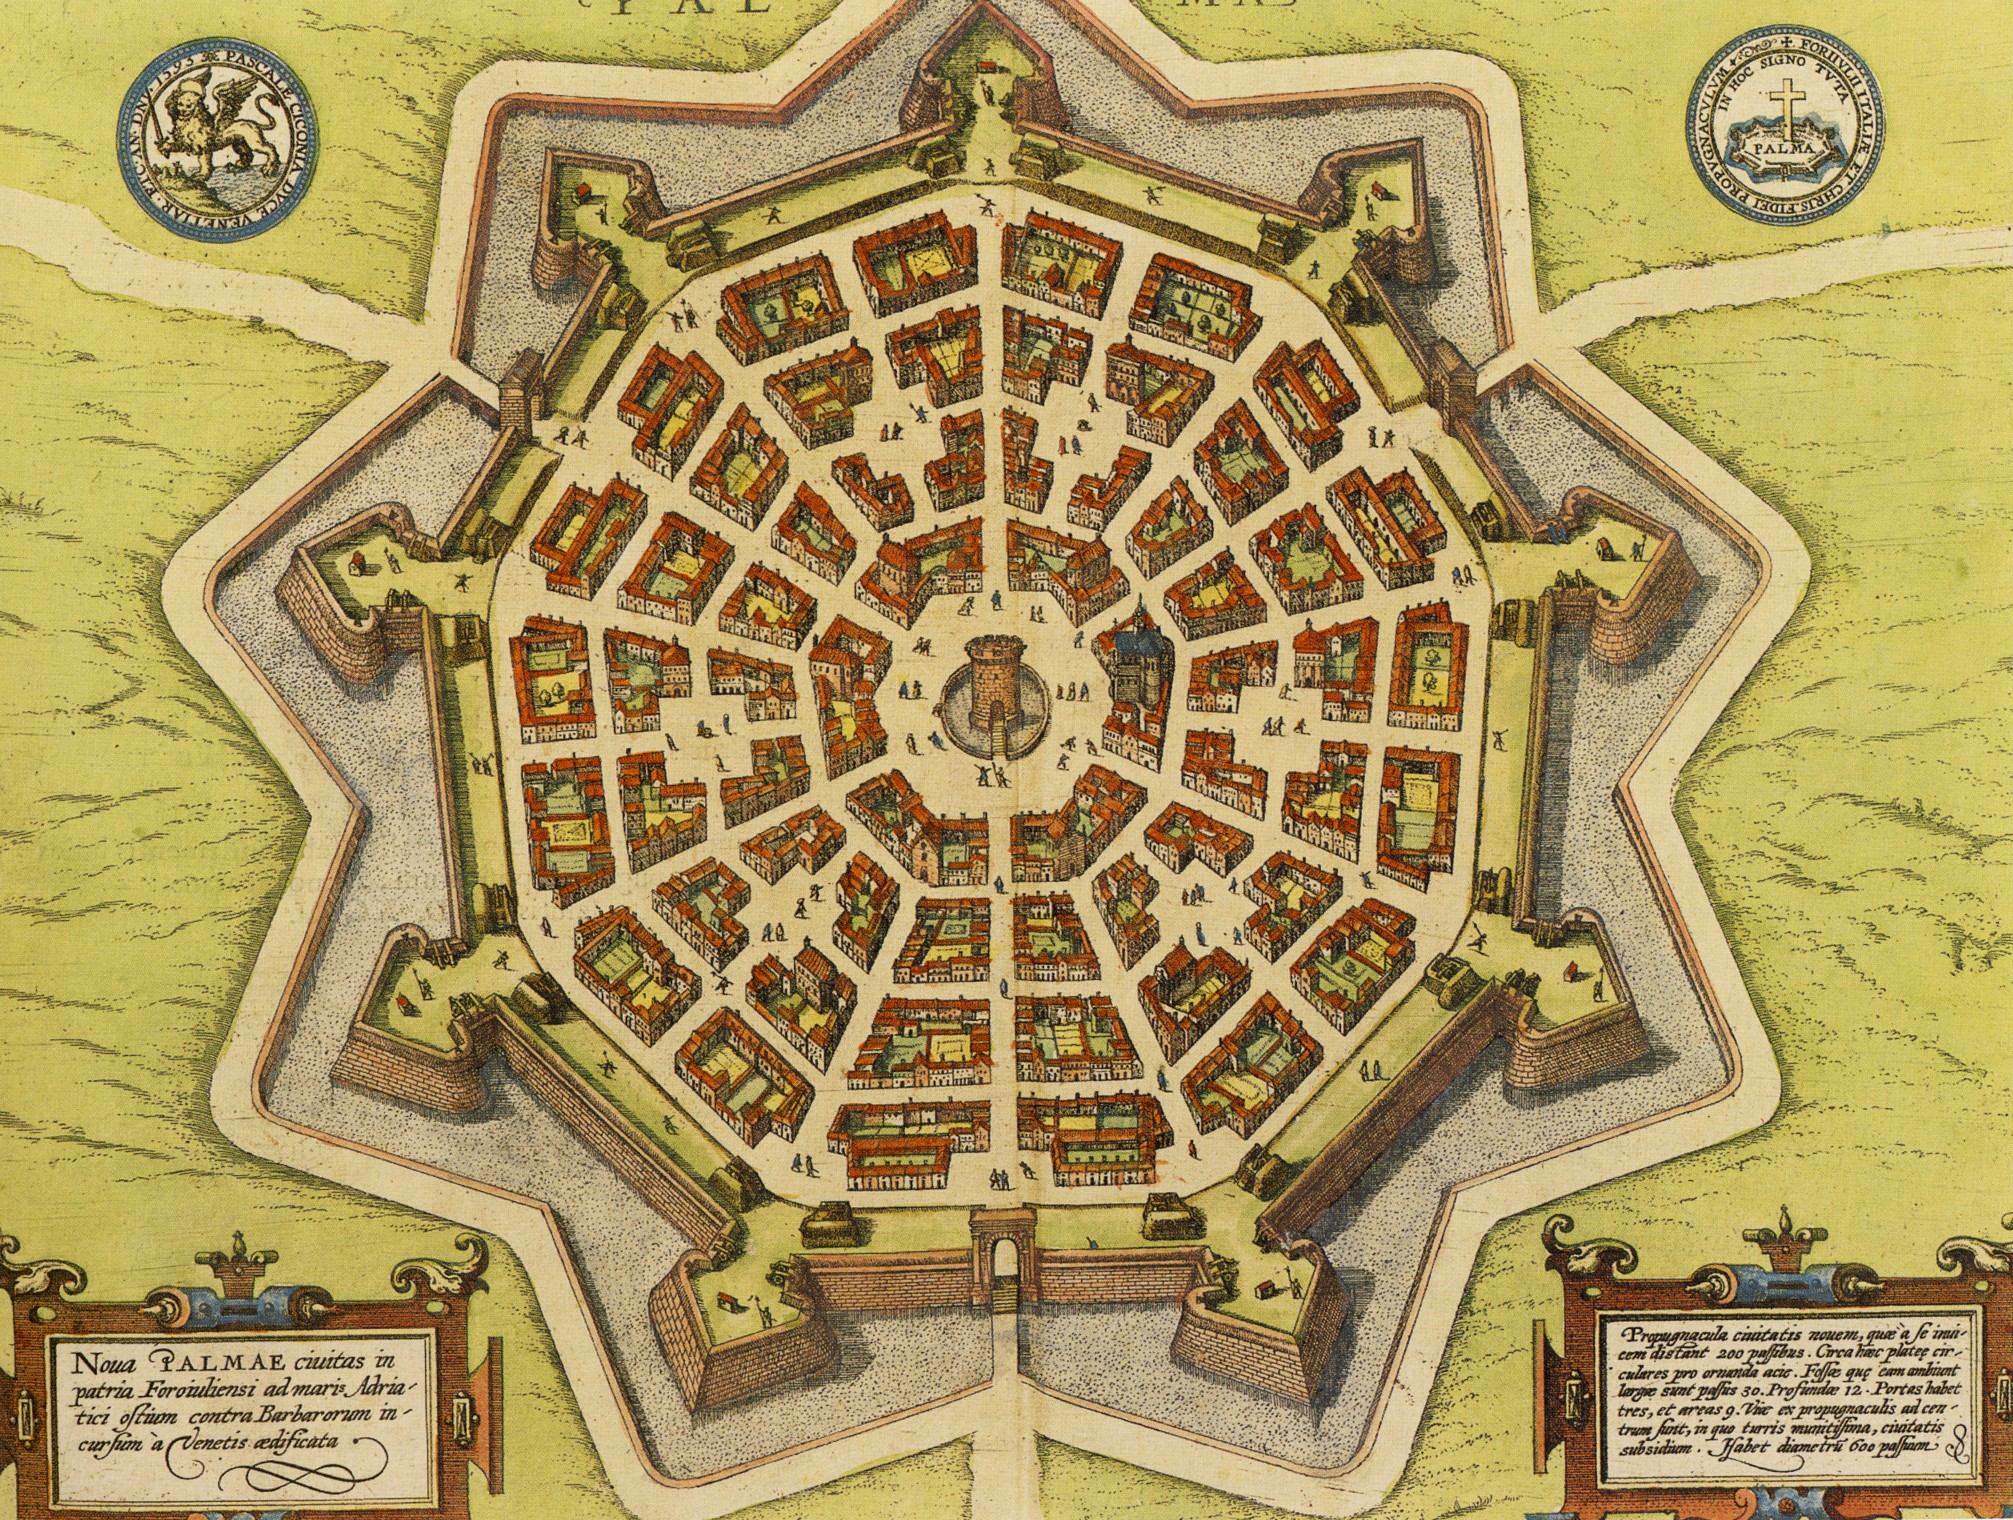 http://upload.wikimedia.org/wikipedia/commons/a/a2/Palmanova1600.jpg